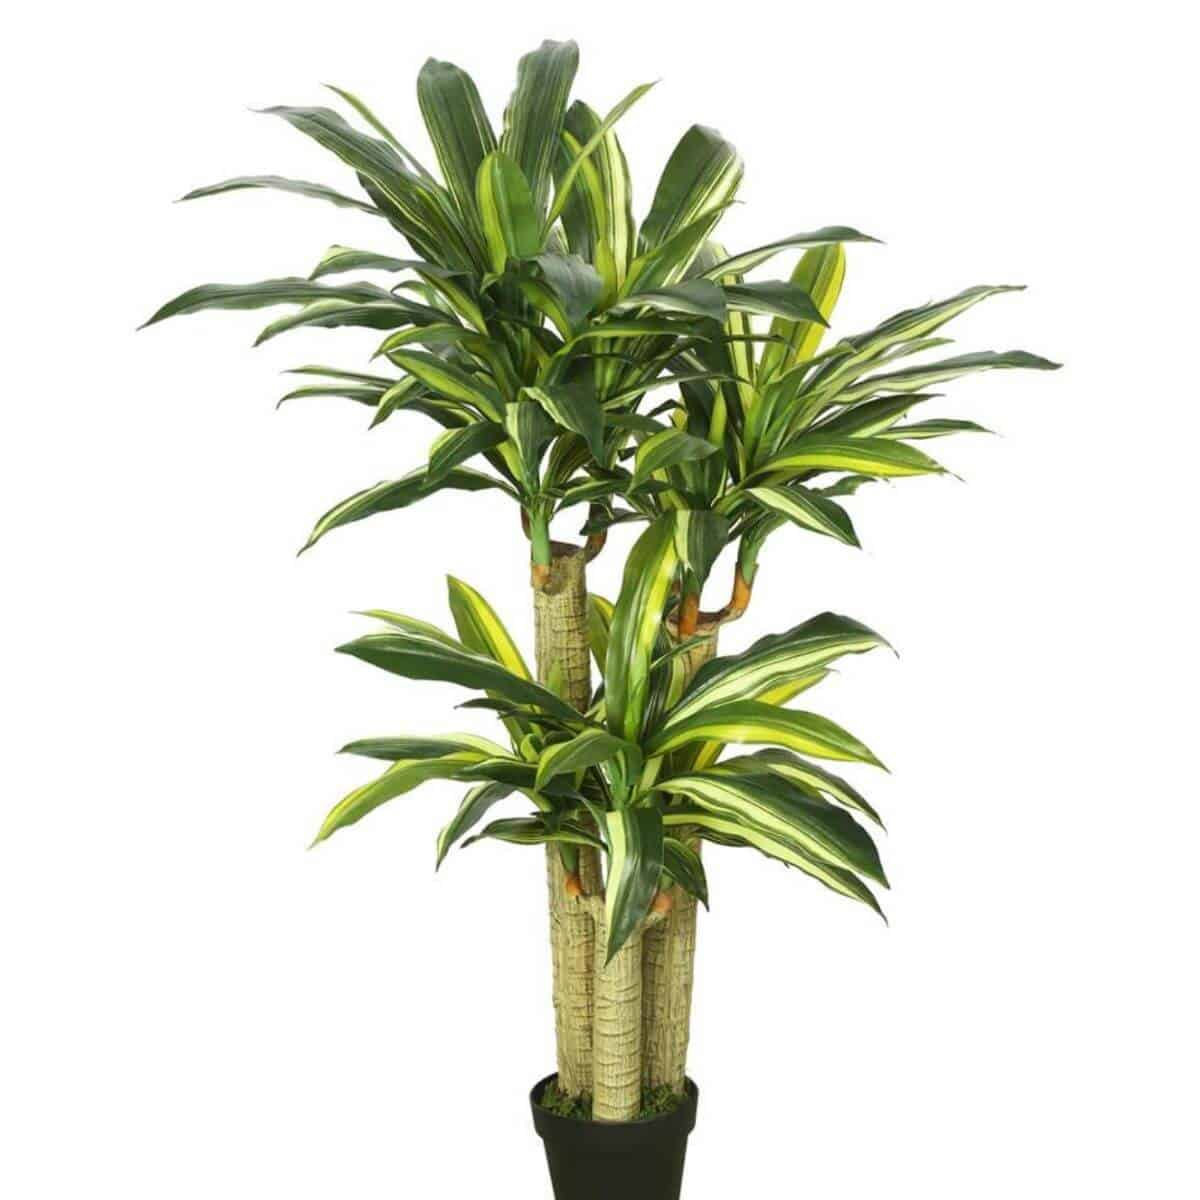 Dracaena in a black pot.